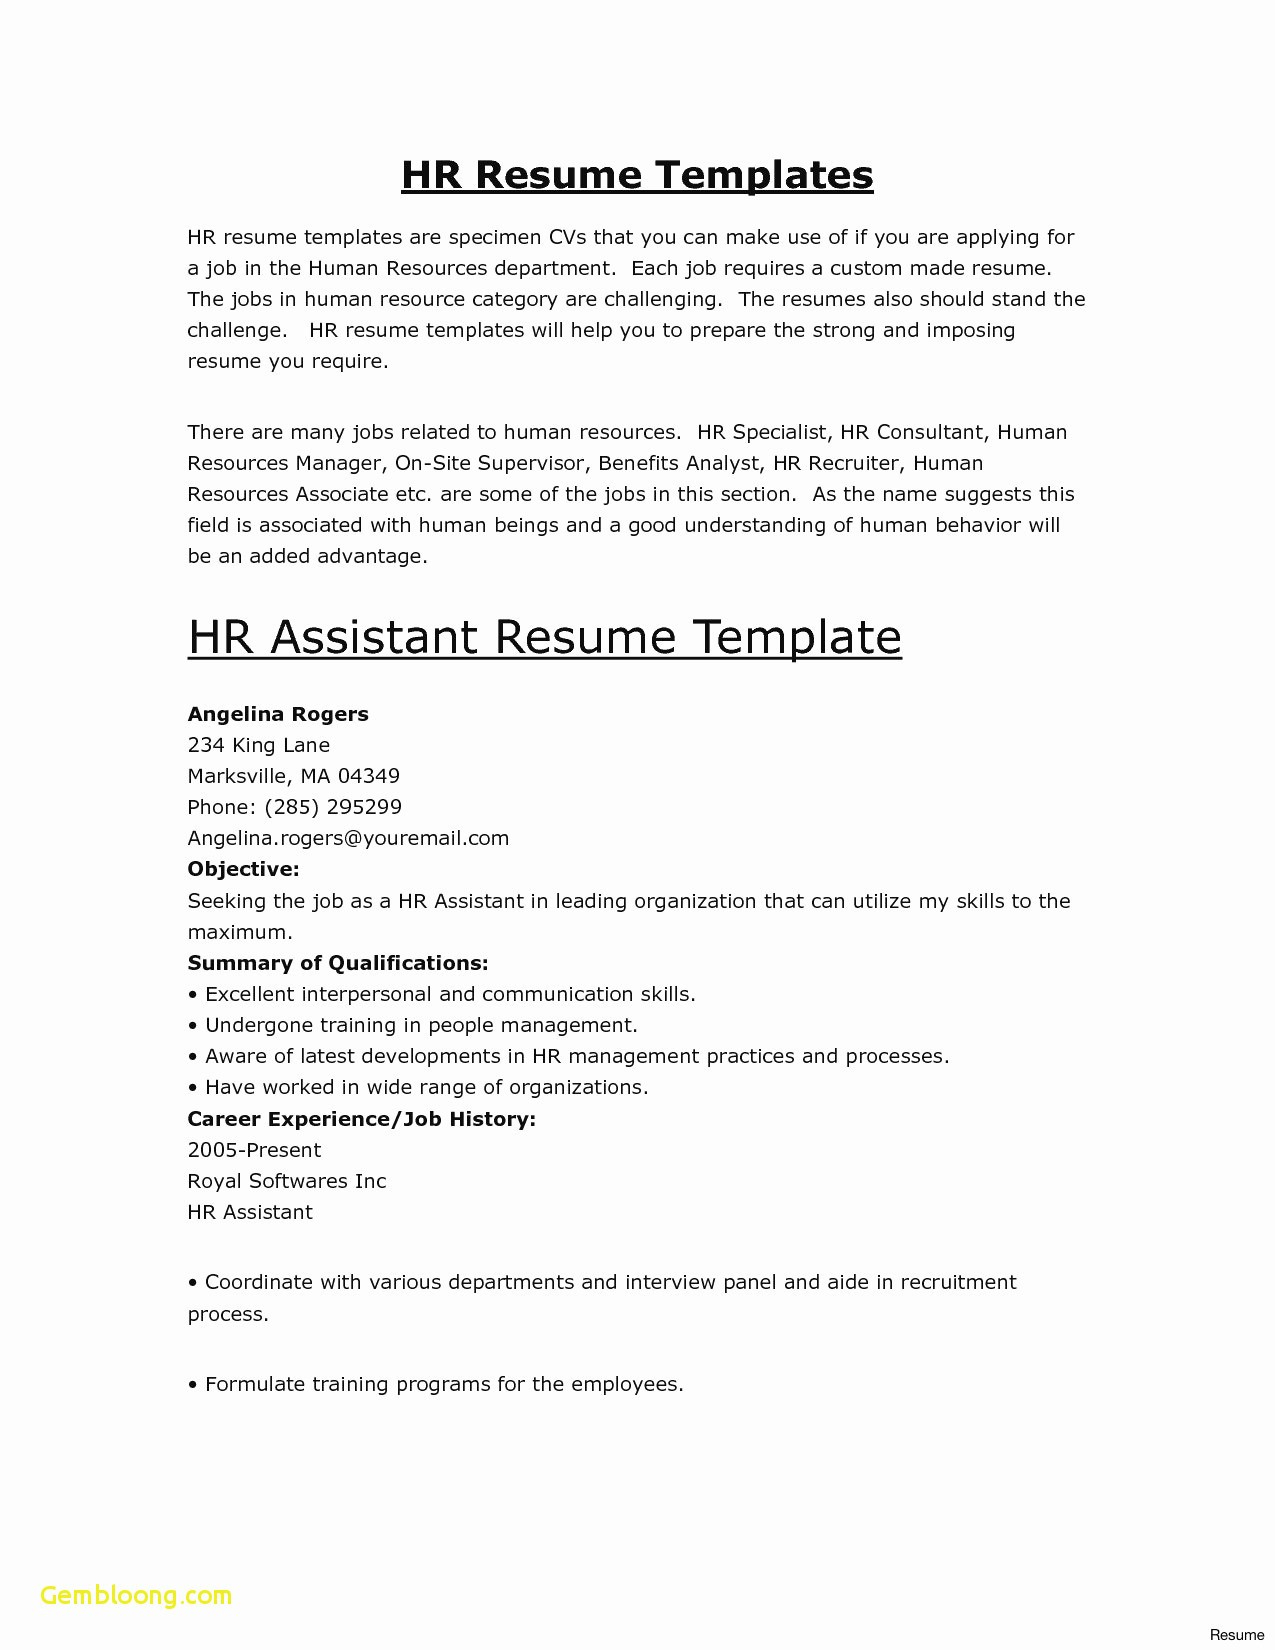 Andrew Lacivita Resume Template - How to Build Resume How to Write A Great Resume Build Fabulous Make